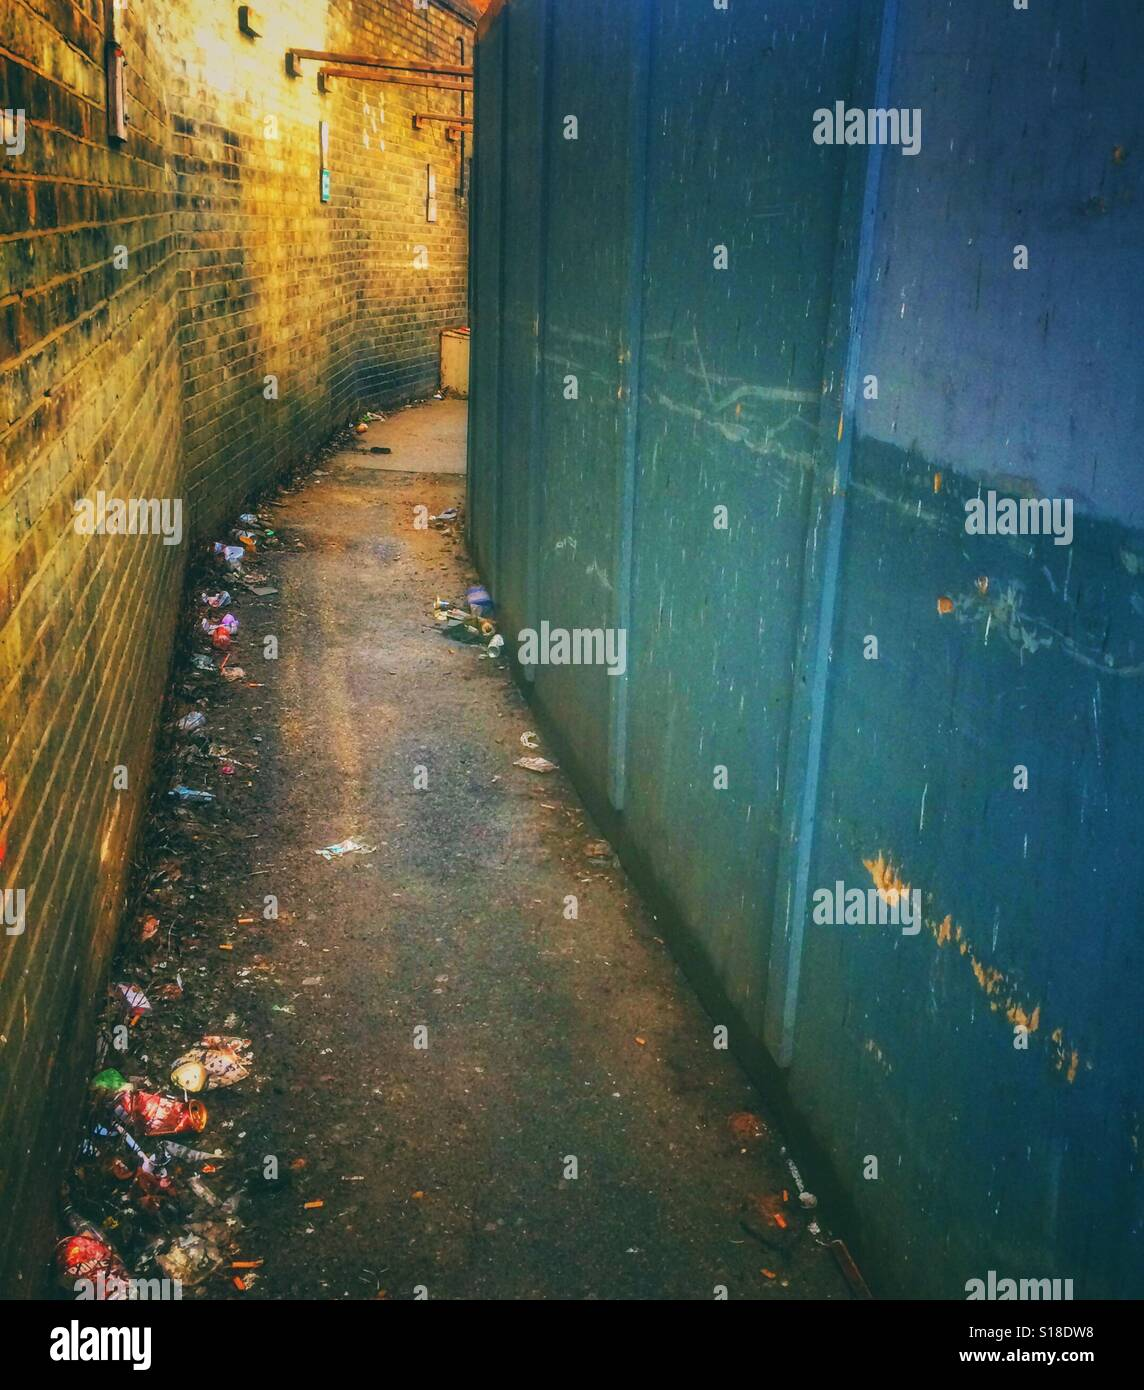 A back street alleyway - Stock Image